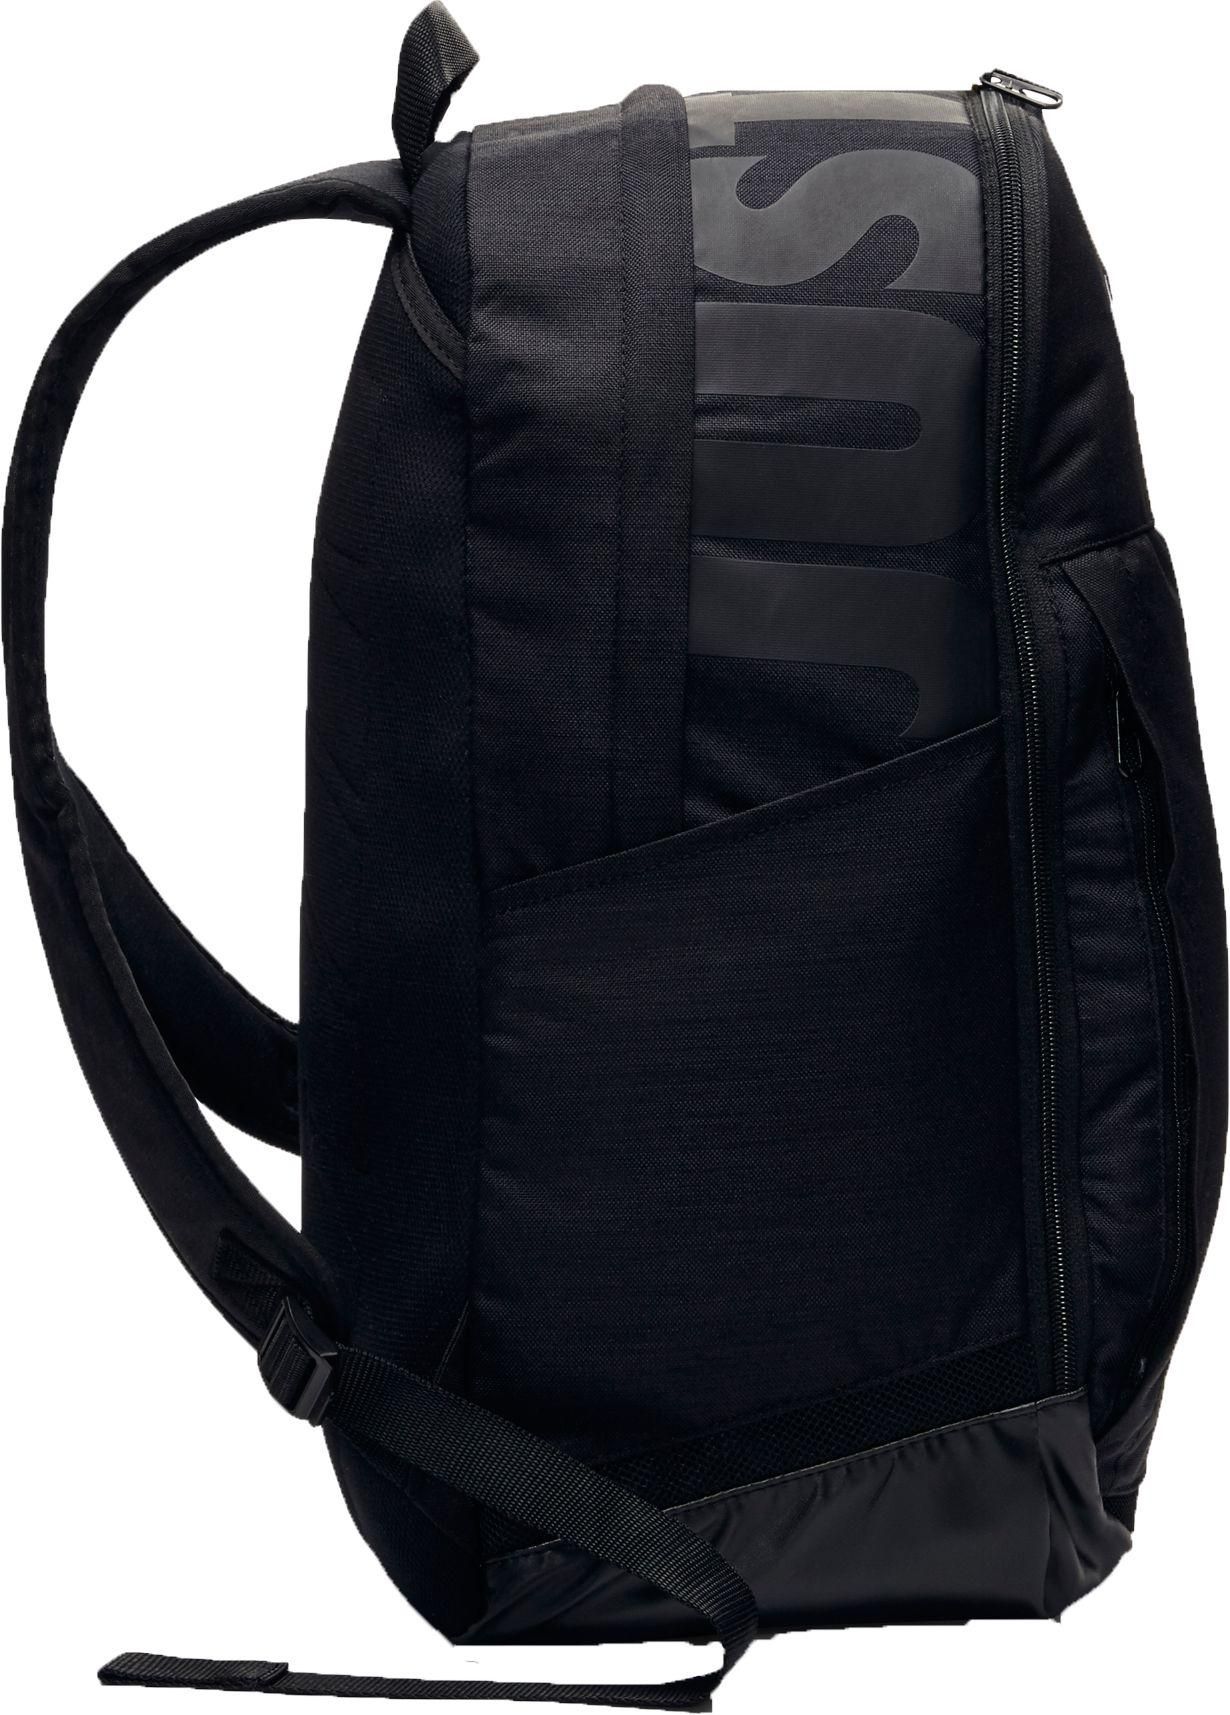 6a35c441d0 Lyst - Nike Rasilia Xl Training Backpack in Black for Men